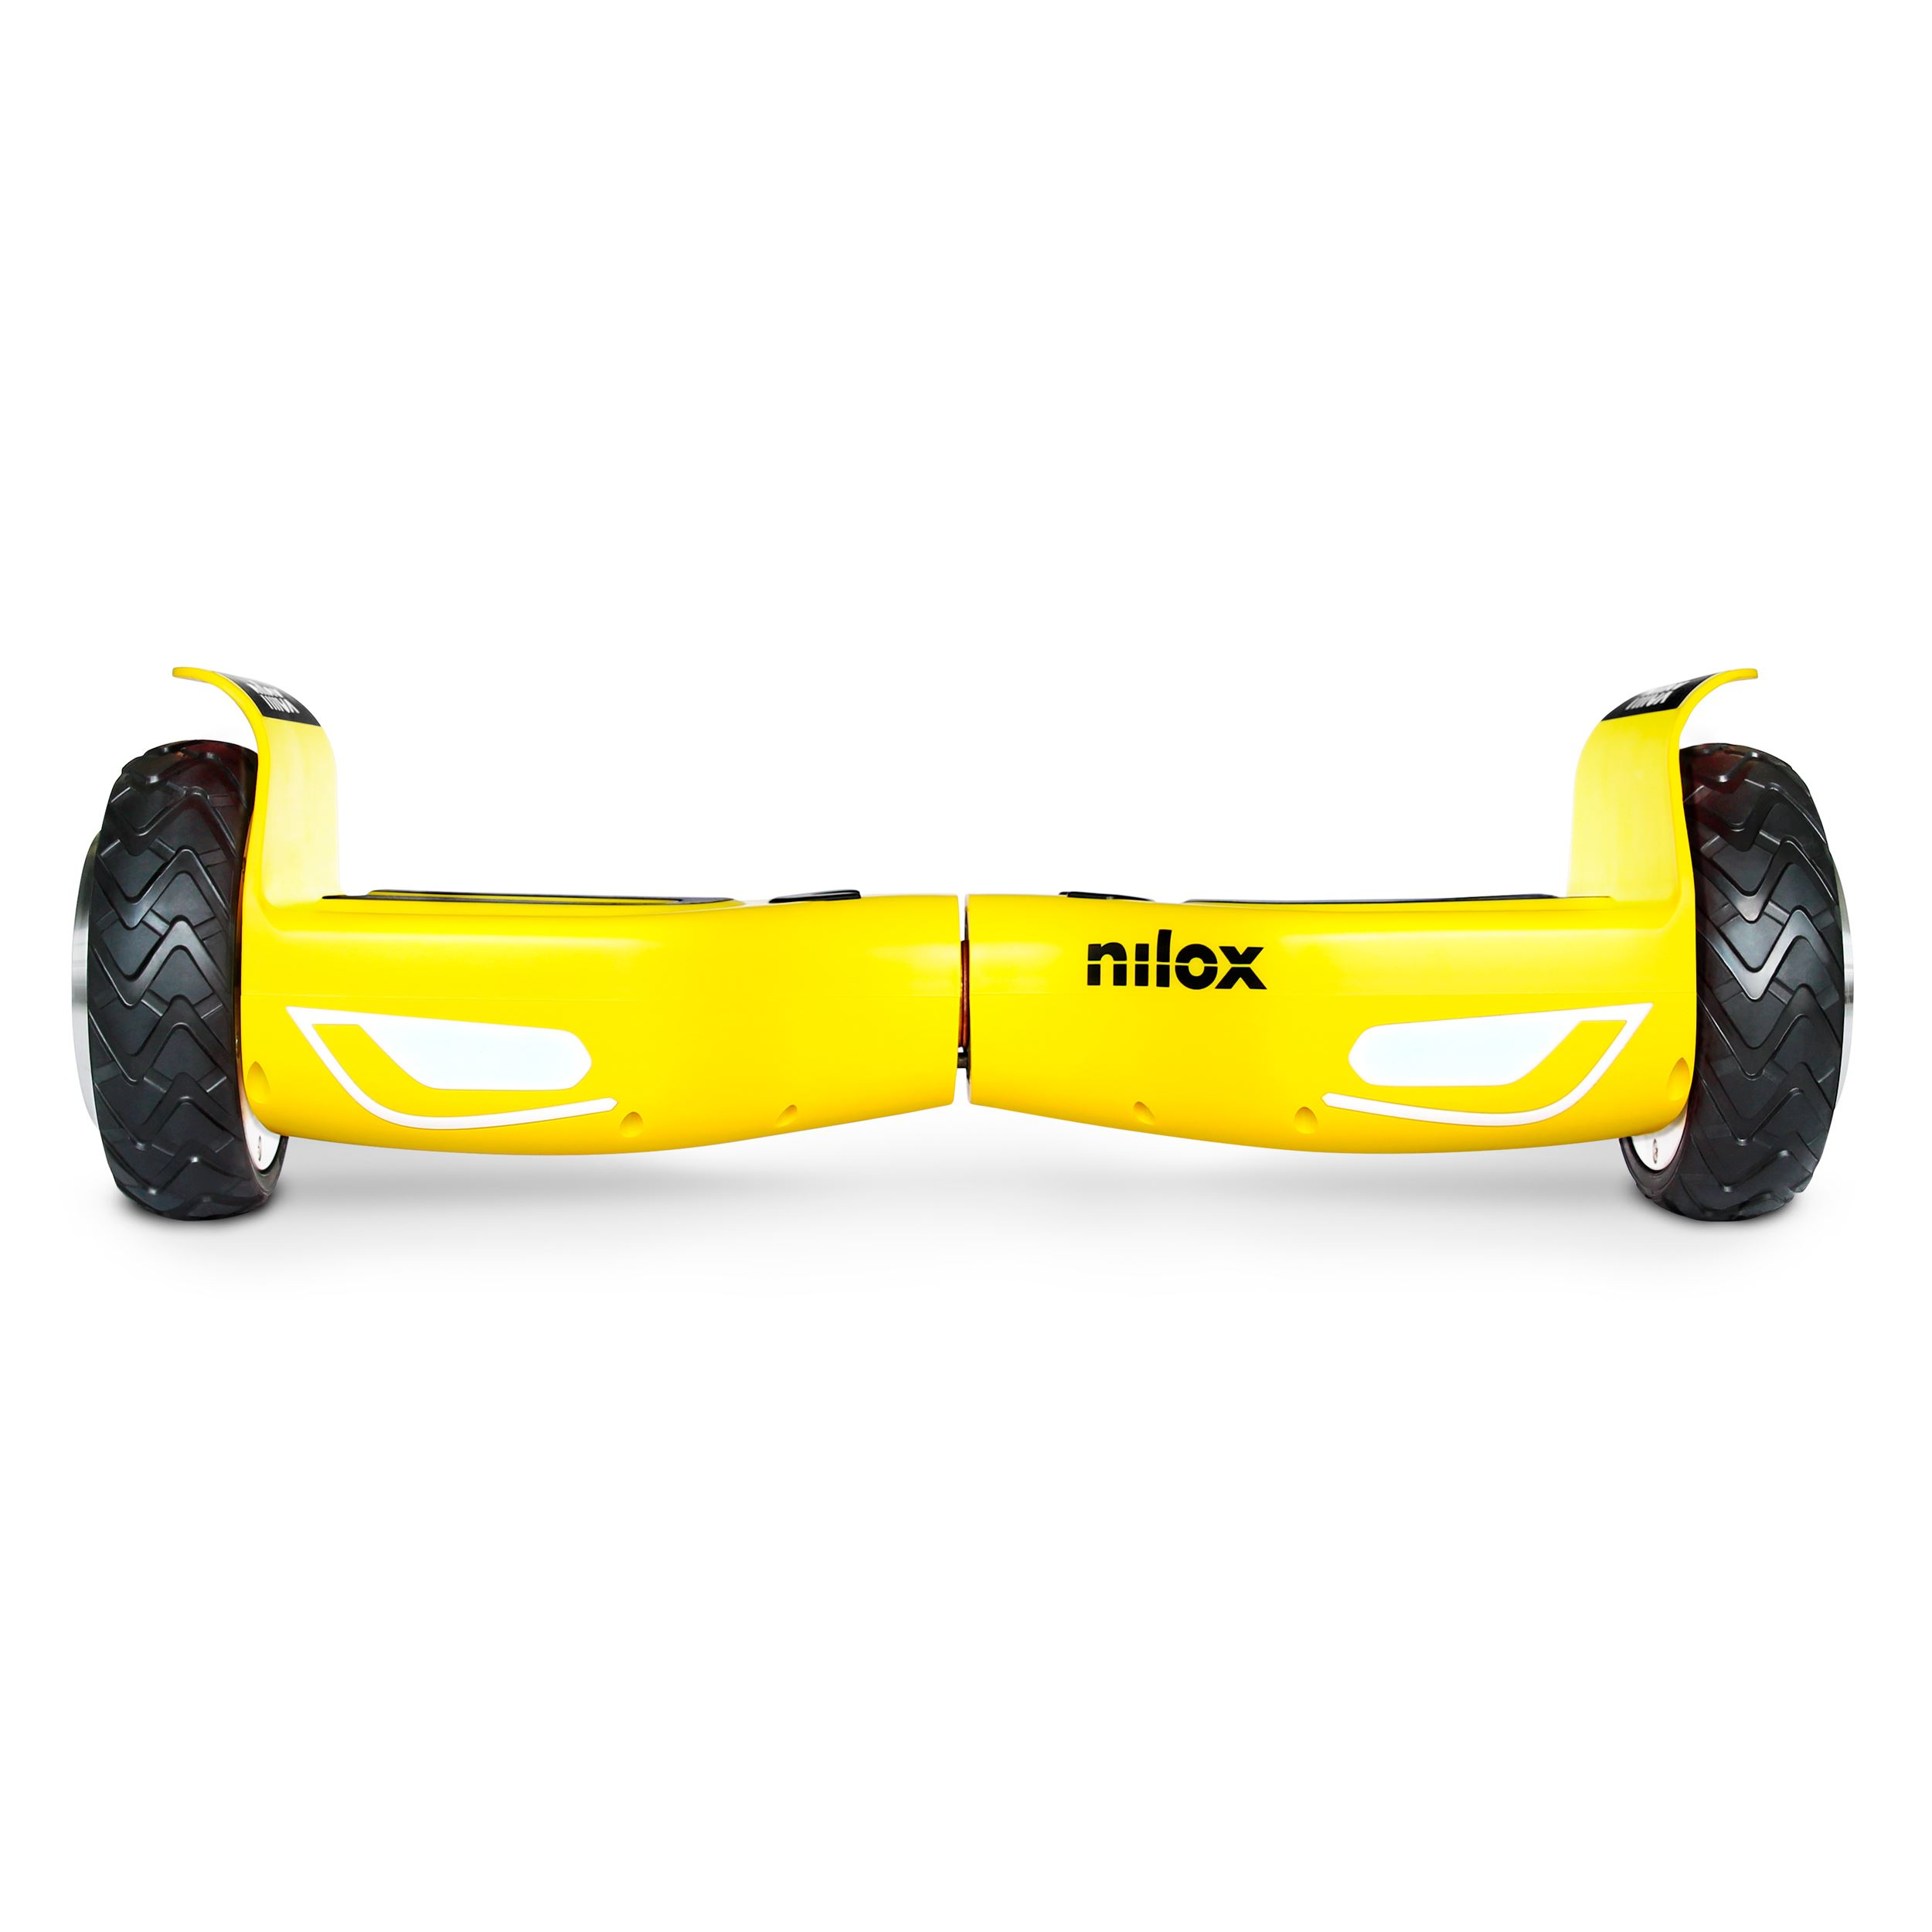 doc-2-hoverboard-yellow-30nxbk65nwn03-505150-hd.jpg